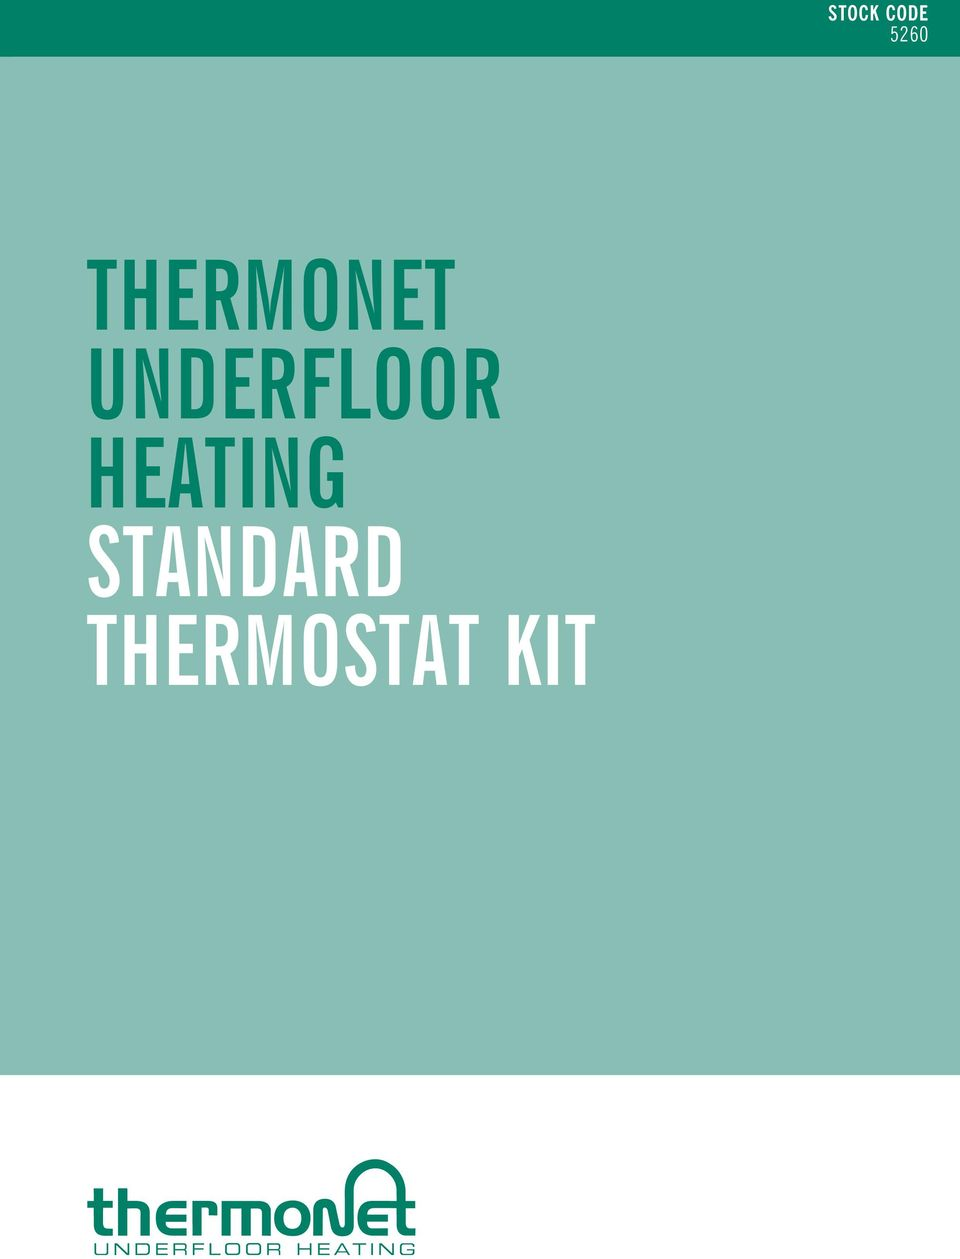 THERMONET UNDERFLOOR HEATING STANDARD THERMOSTAT KIT STOCK CODE PDF